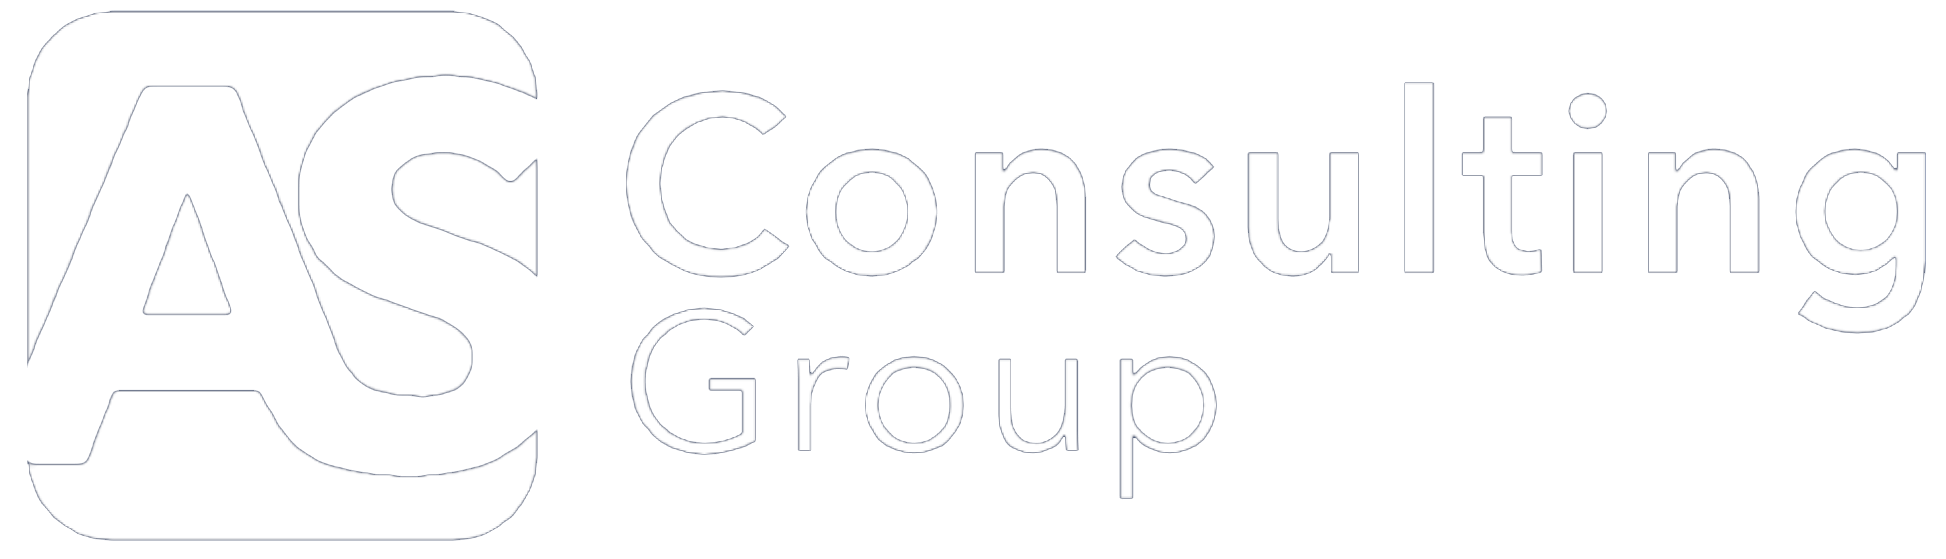 AS Consulting Group logo